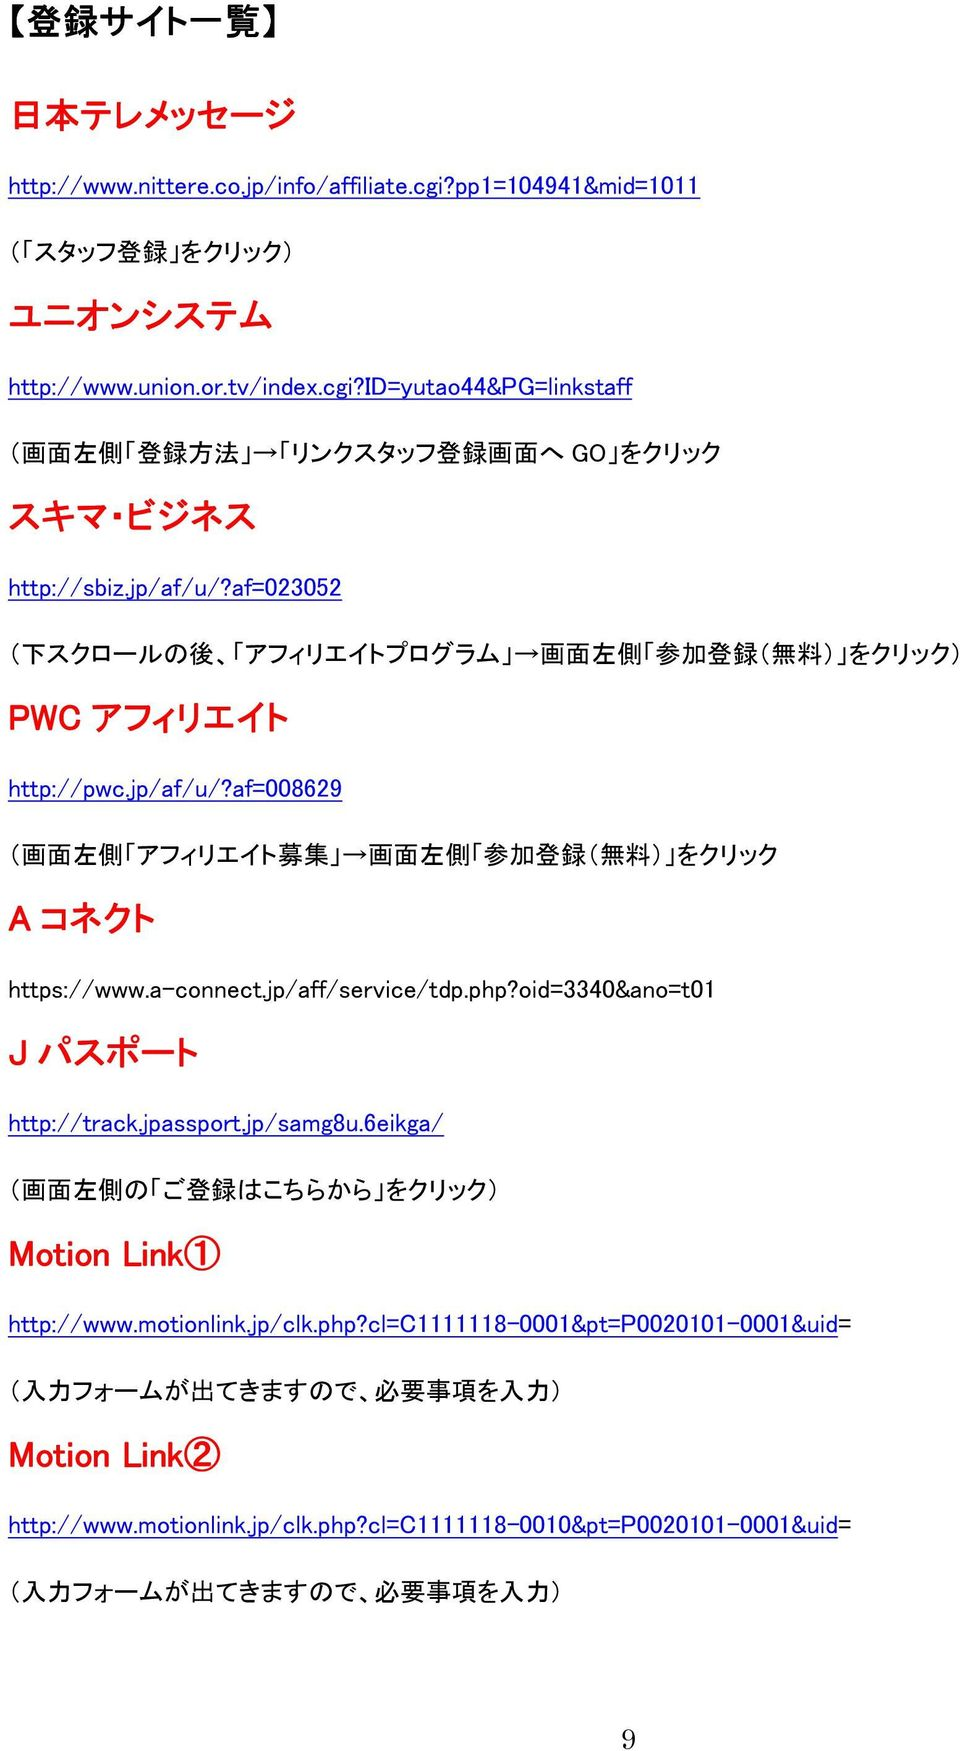 jp/aff/service/tdp.php?oid=3340&ano=t01 J パスポート http://track.jpassport.jp/samg8u.6eikga/ ( 画 面 左 側 の ご 登 録 はこちらから をクリック) Motion Link1 http://www.motionlink.jp/clk.php?cl=c1111118-0001&pt=p0020101-0001&uid= ( 入 力 フォームが 出 てきますので 必 要 事 項 を 入 力 ) Motion Link2 http://www.